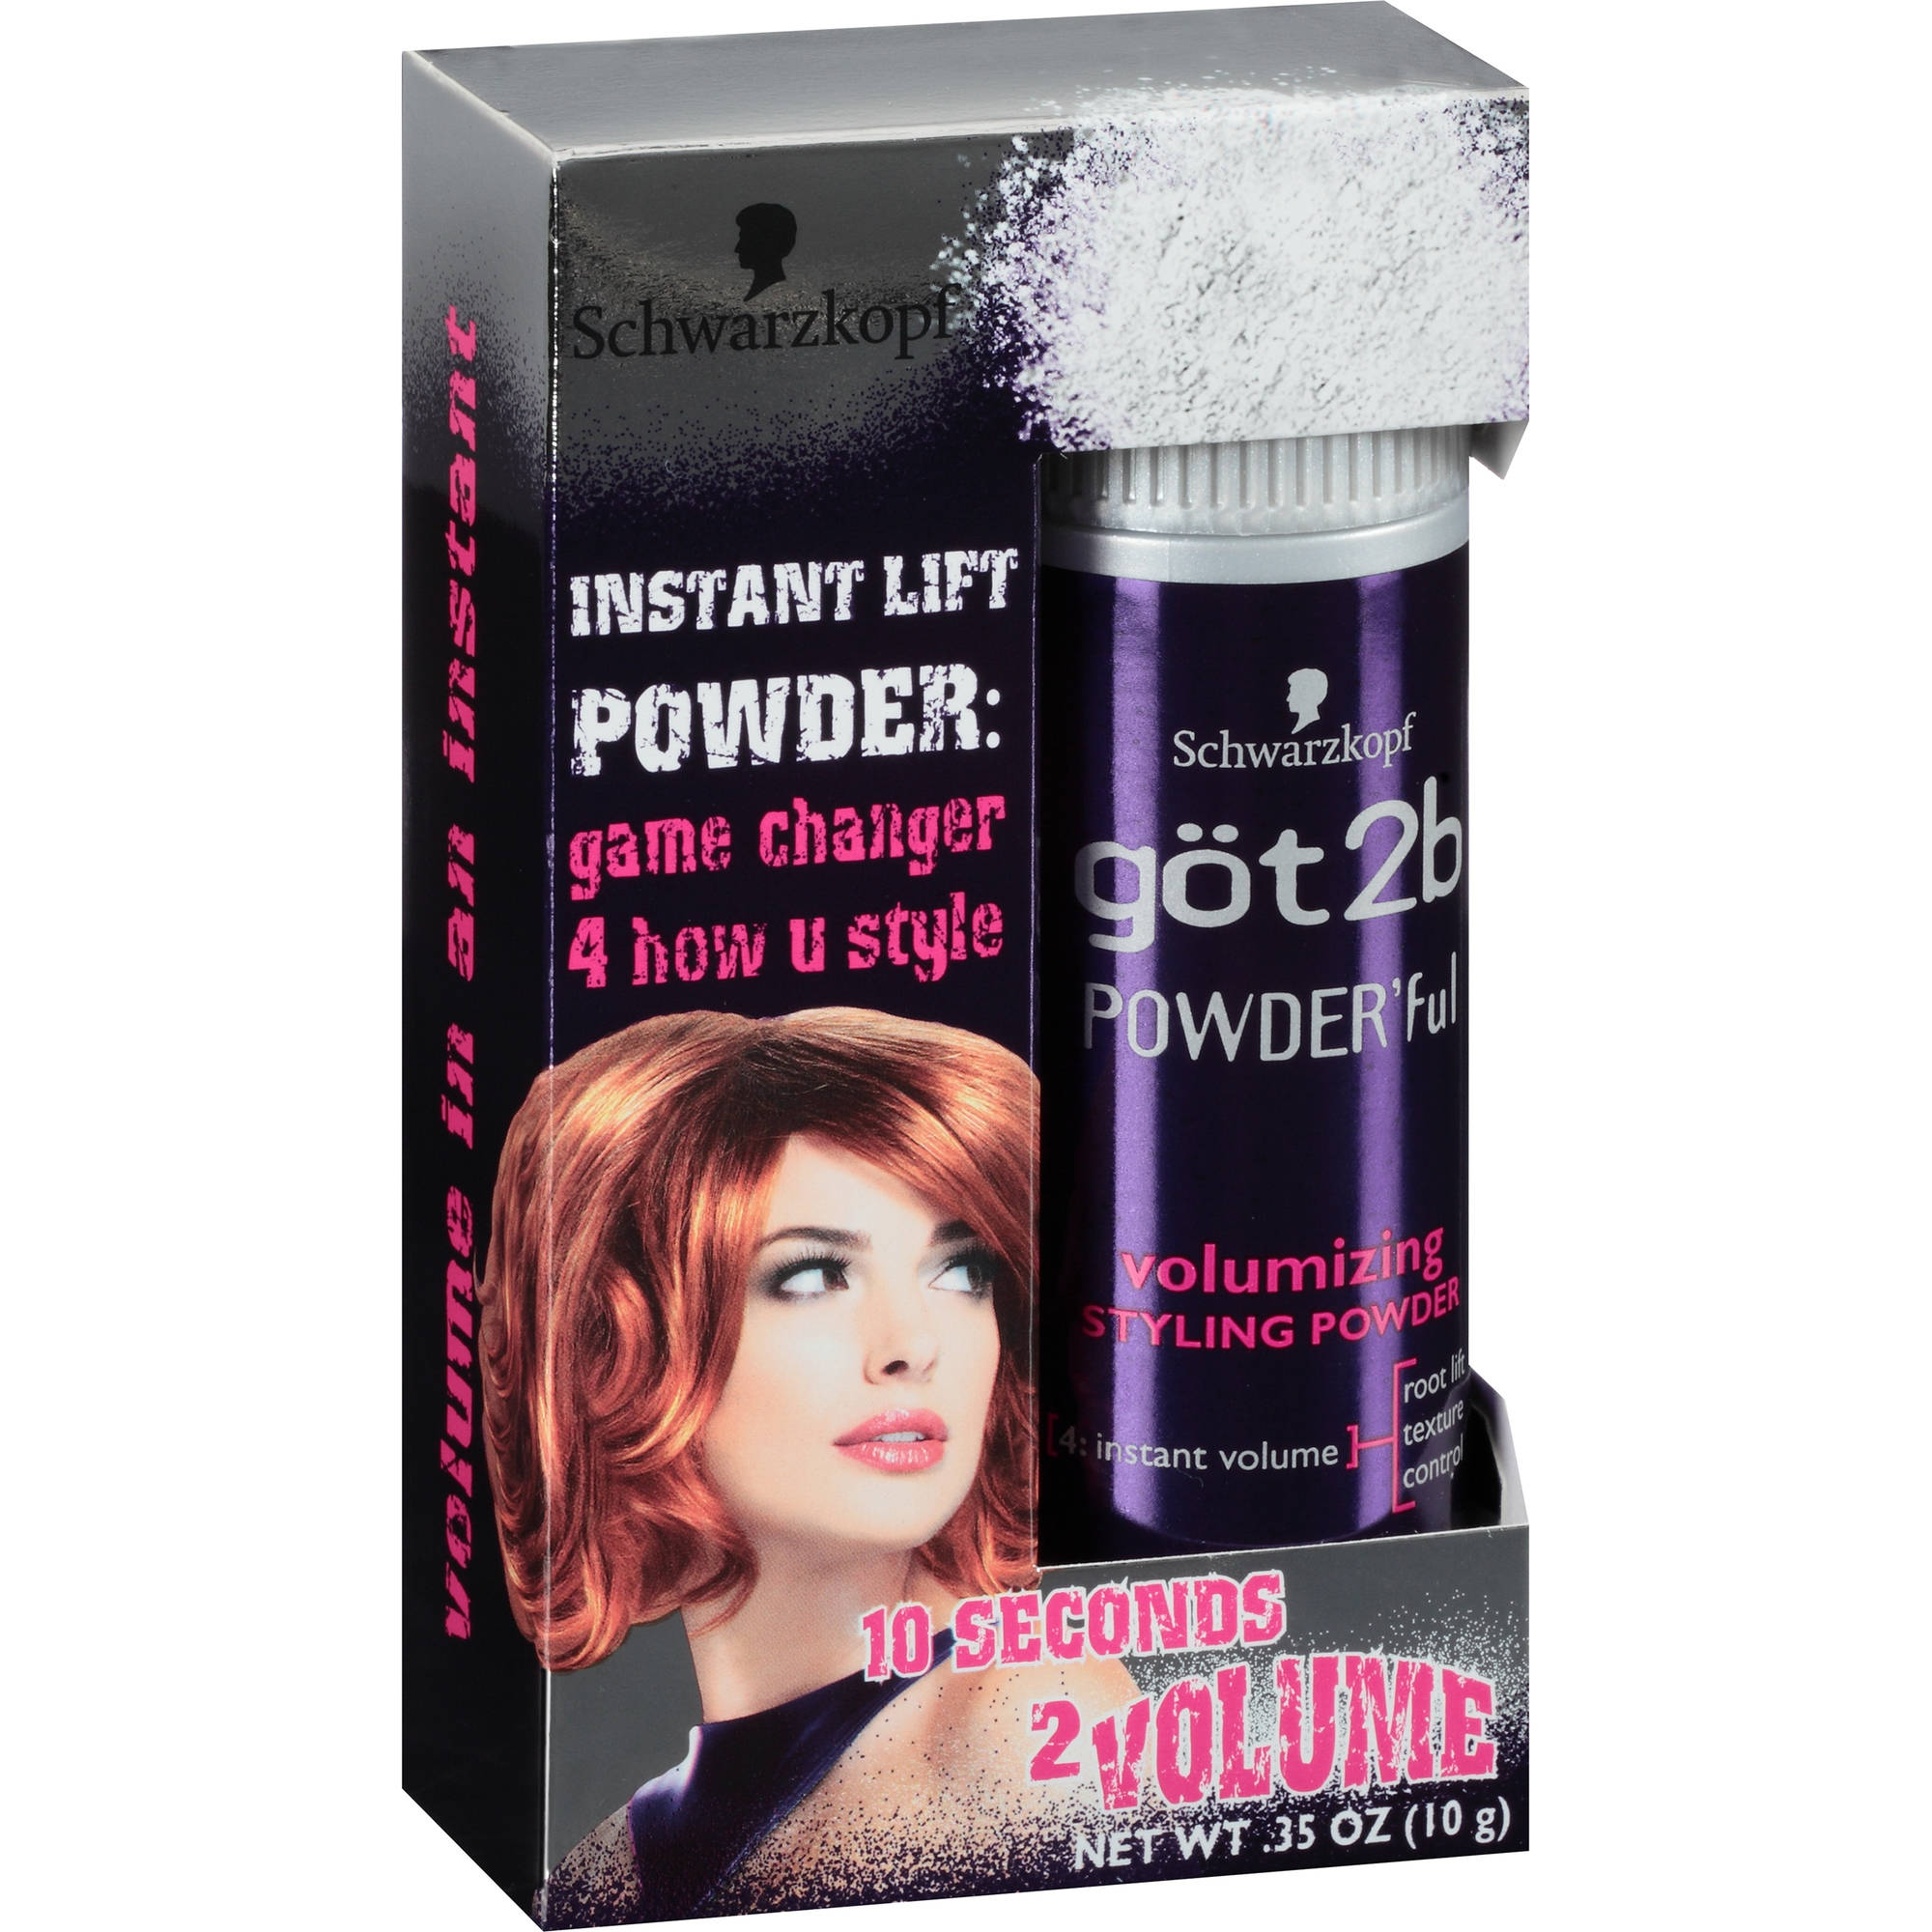 got2b Powder'ful Volumizing Styling Powder, .35 oz